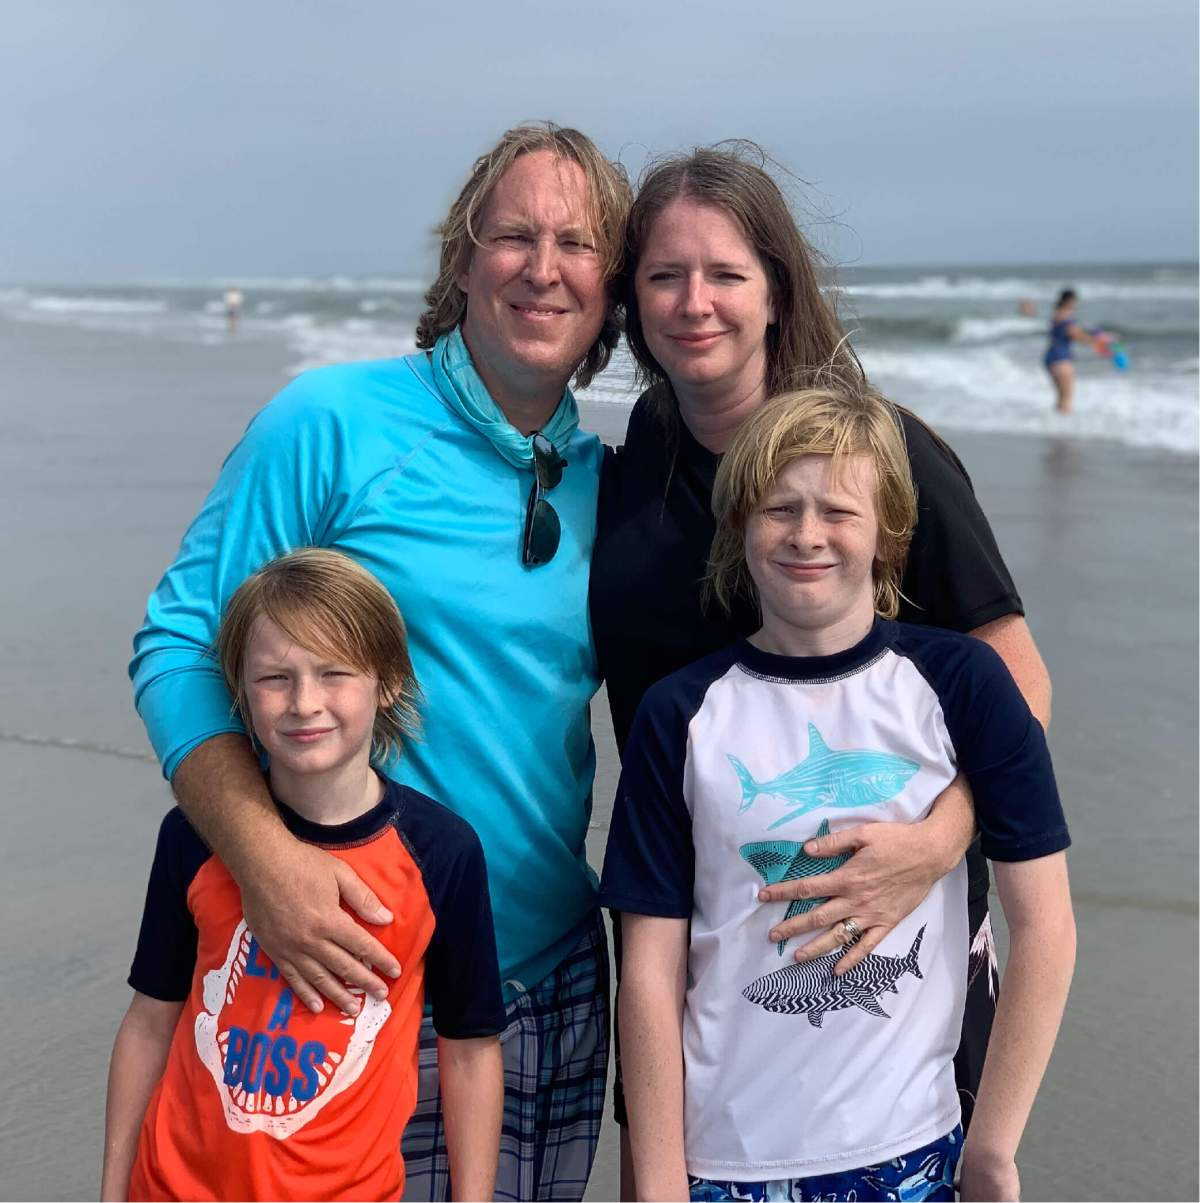 Gregory with his wife and two children posing on the beach